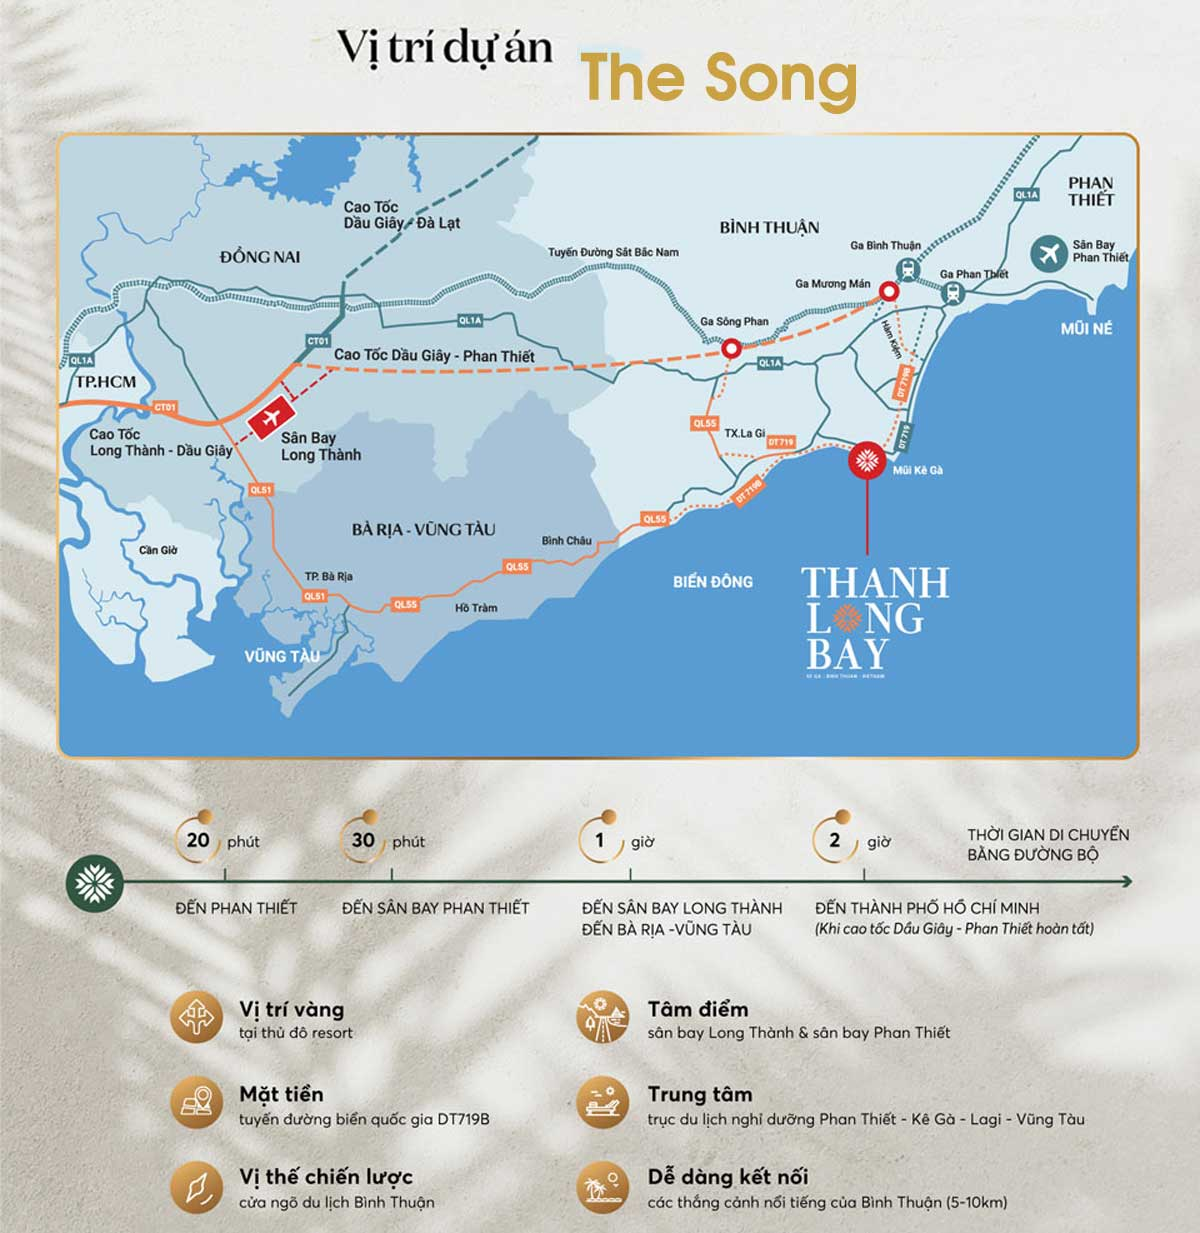 Vi tri Phan Khu nha pho the song by thanh long bay - The Song By Thanh Long Bay